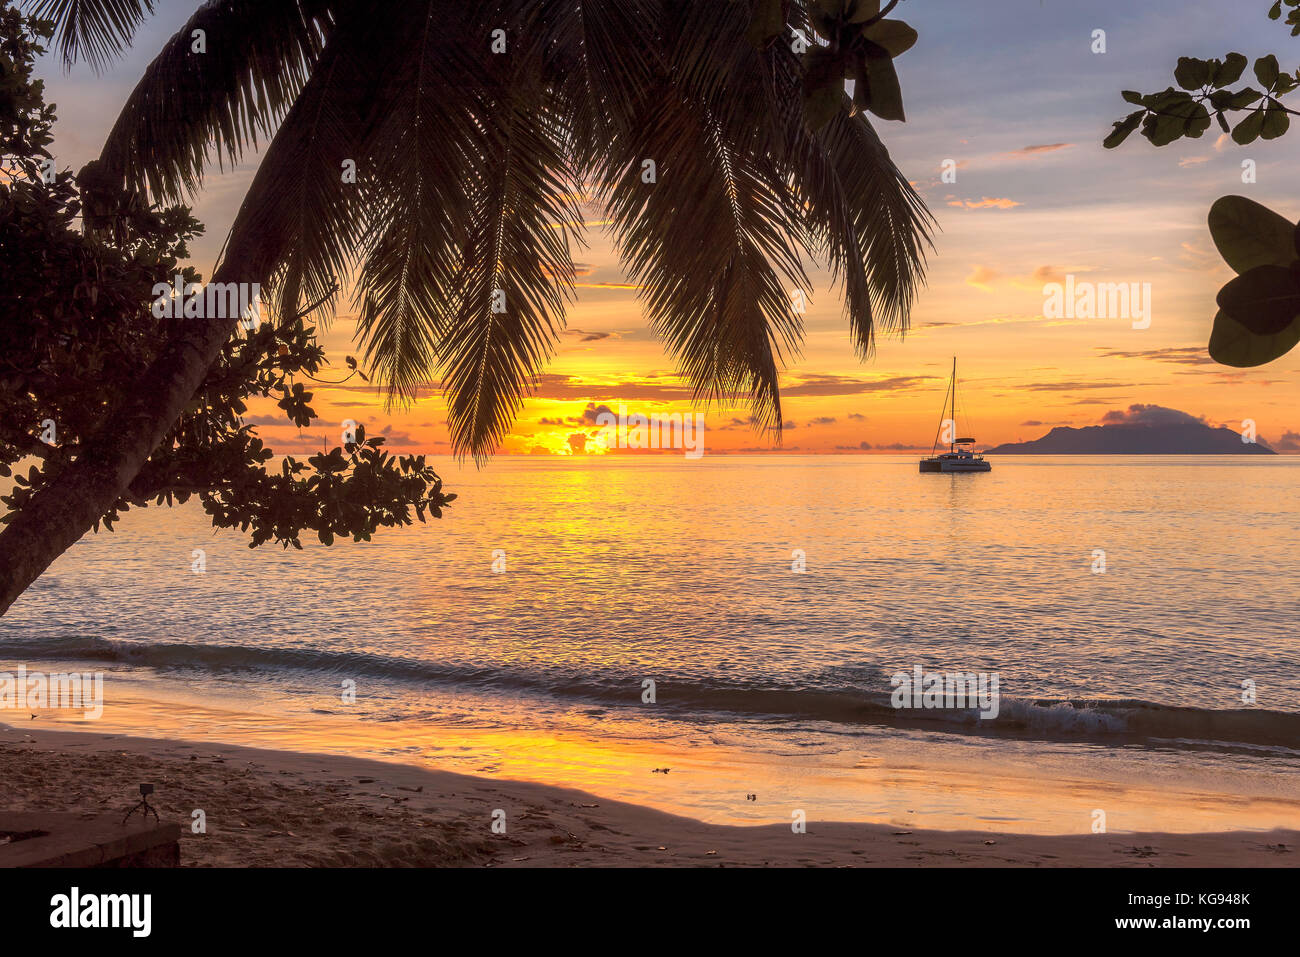 Tropical beach at sunset - Stock Image